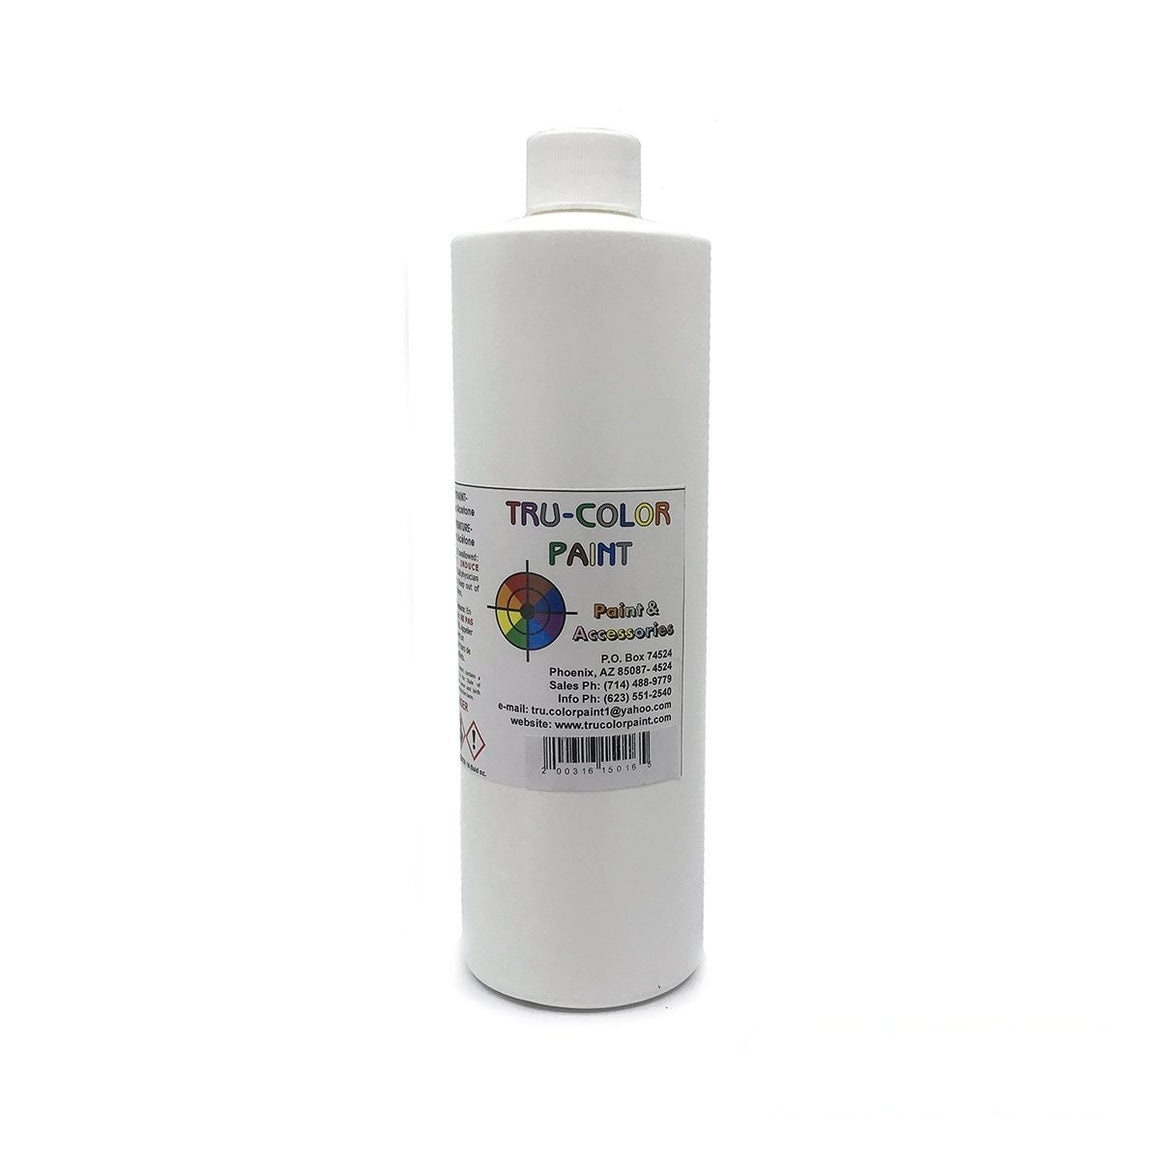 Tru-Color Paints - 16oz.